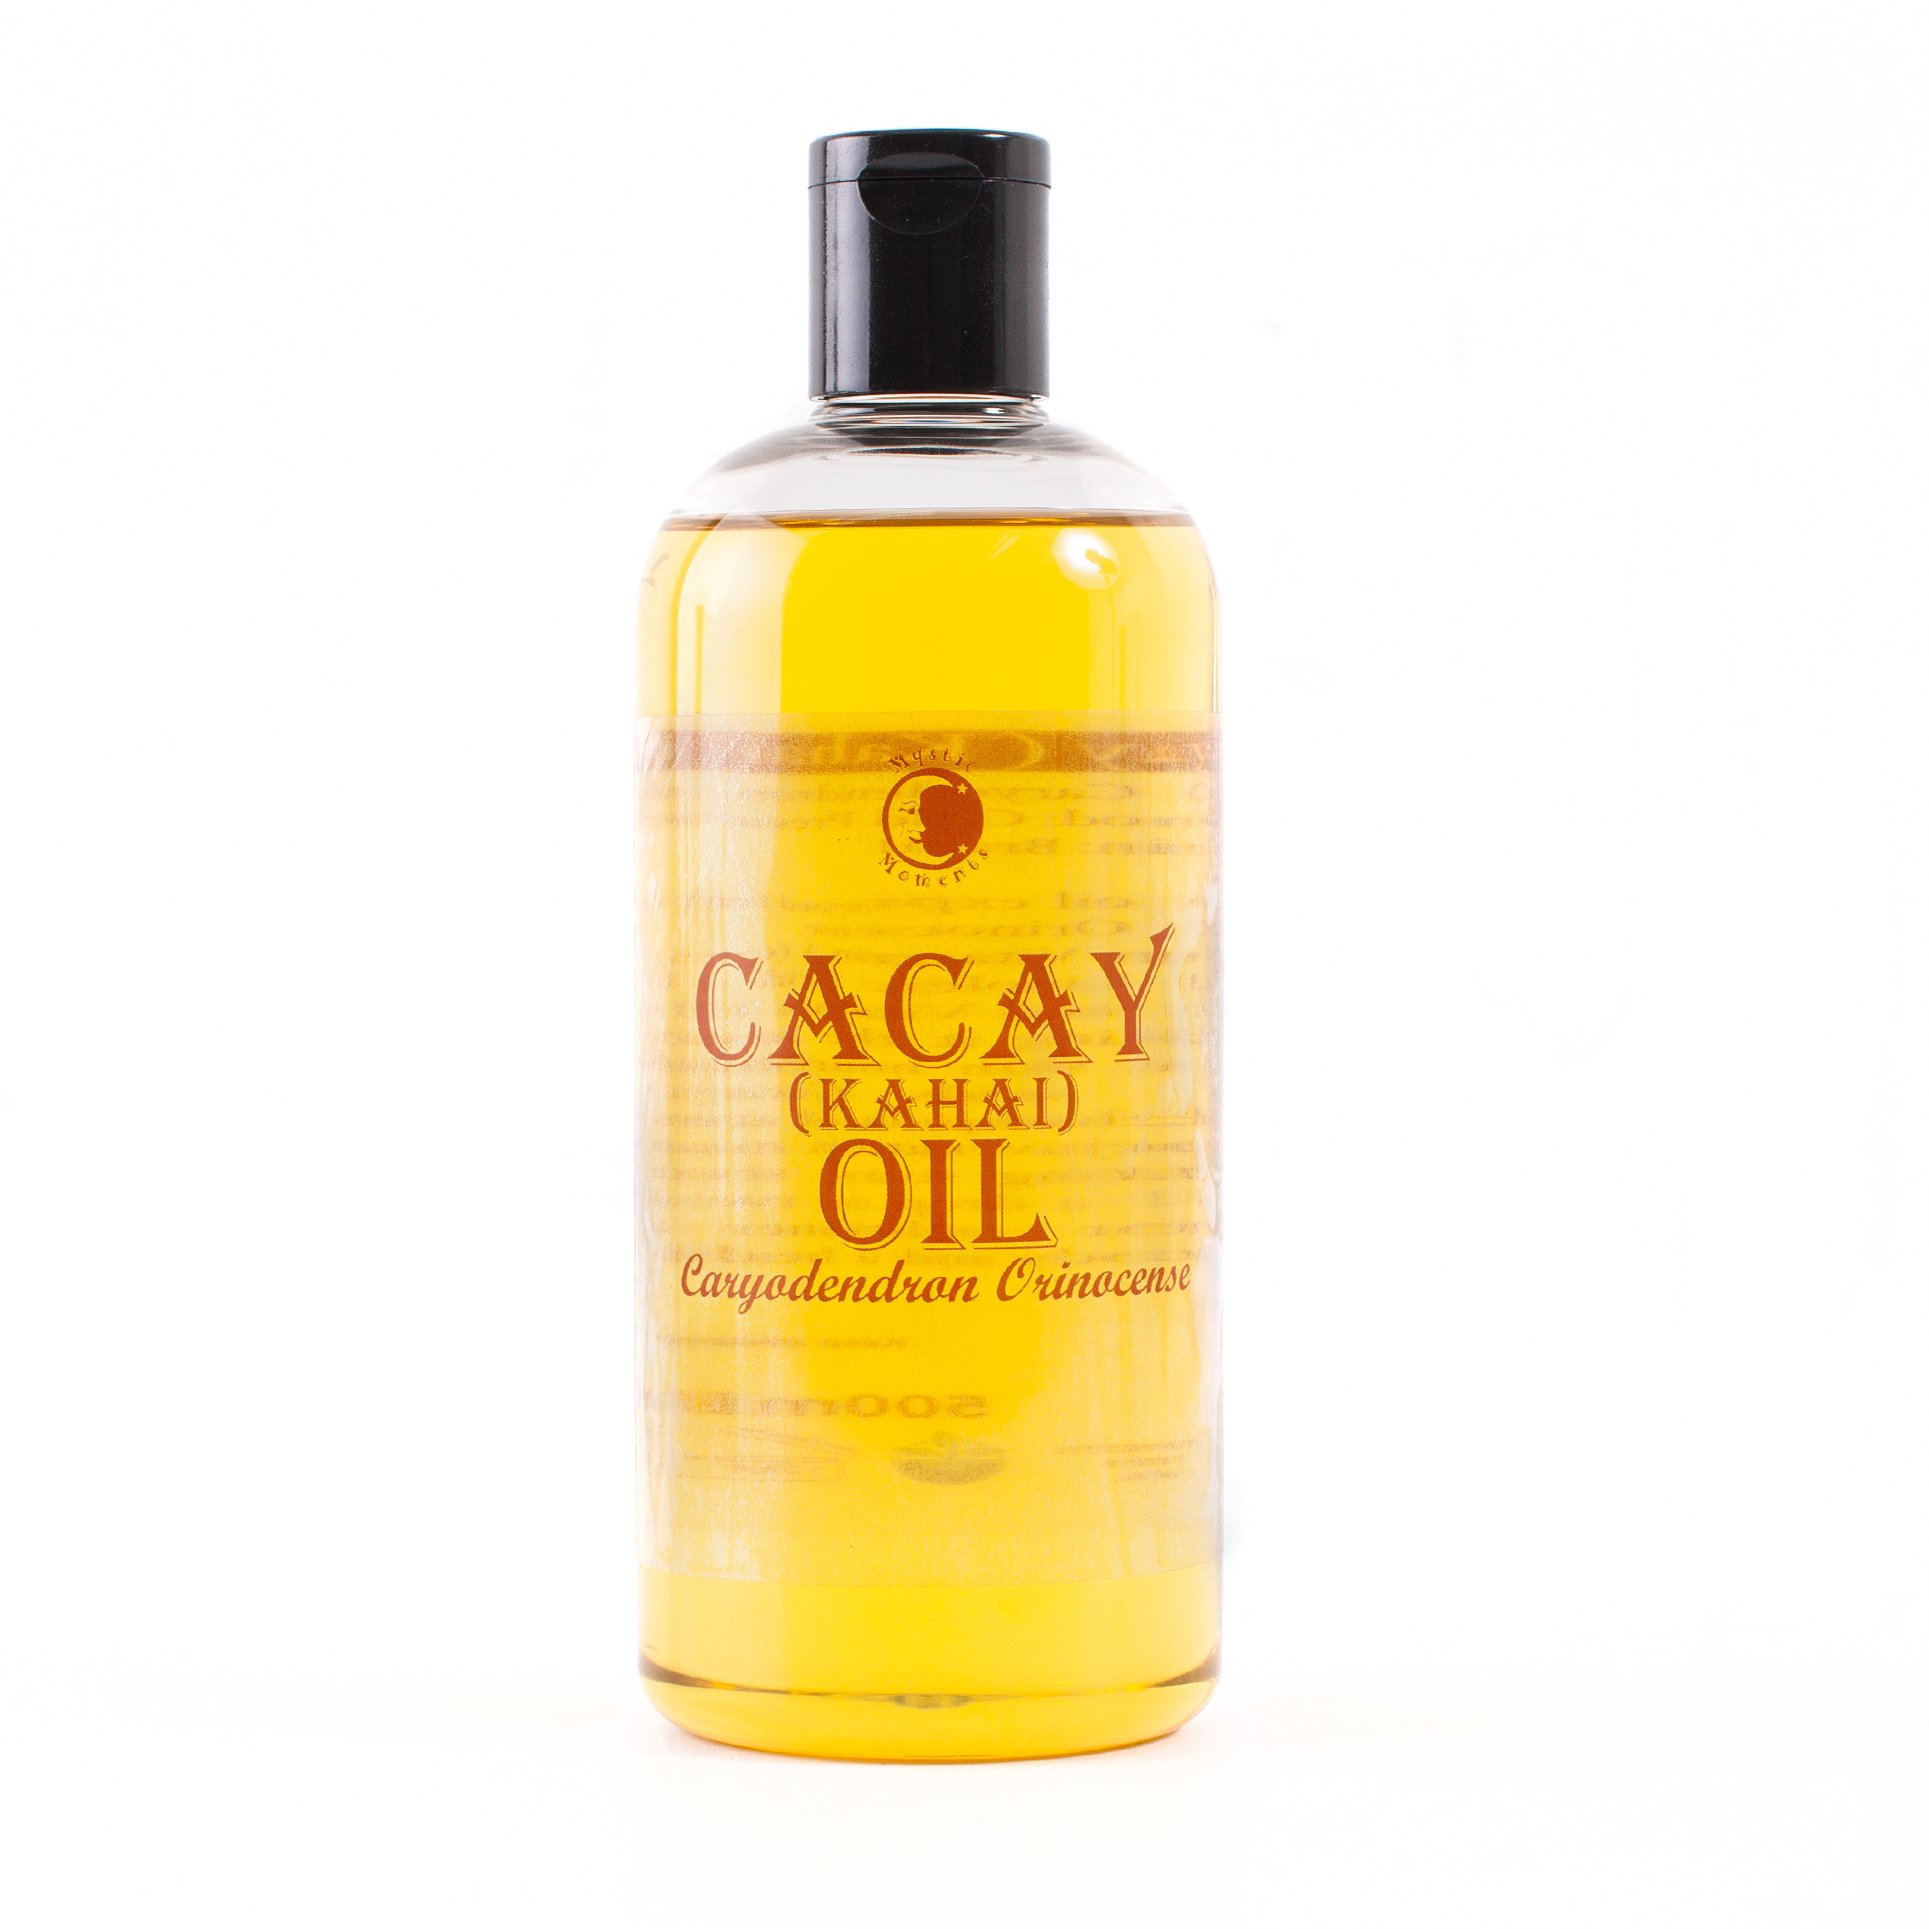 Mystic Moments | Cacay (Kahai) Carrier Oil - 500ml - 100% Pure by Mystic Moments